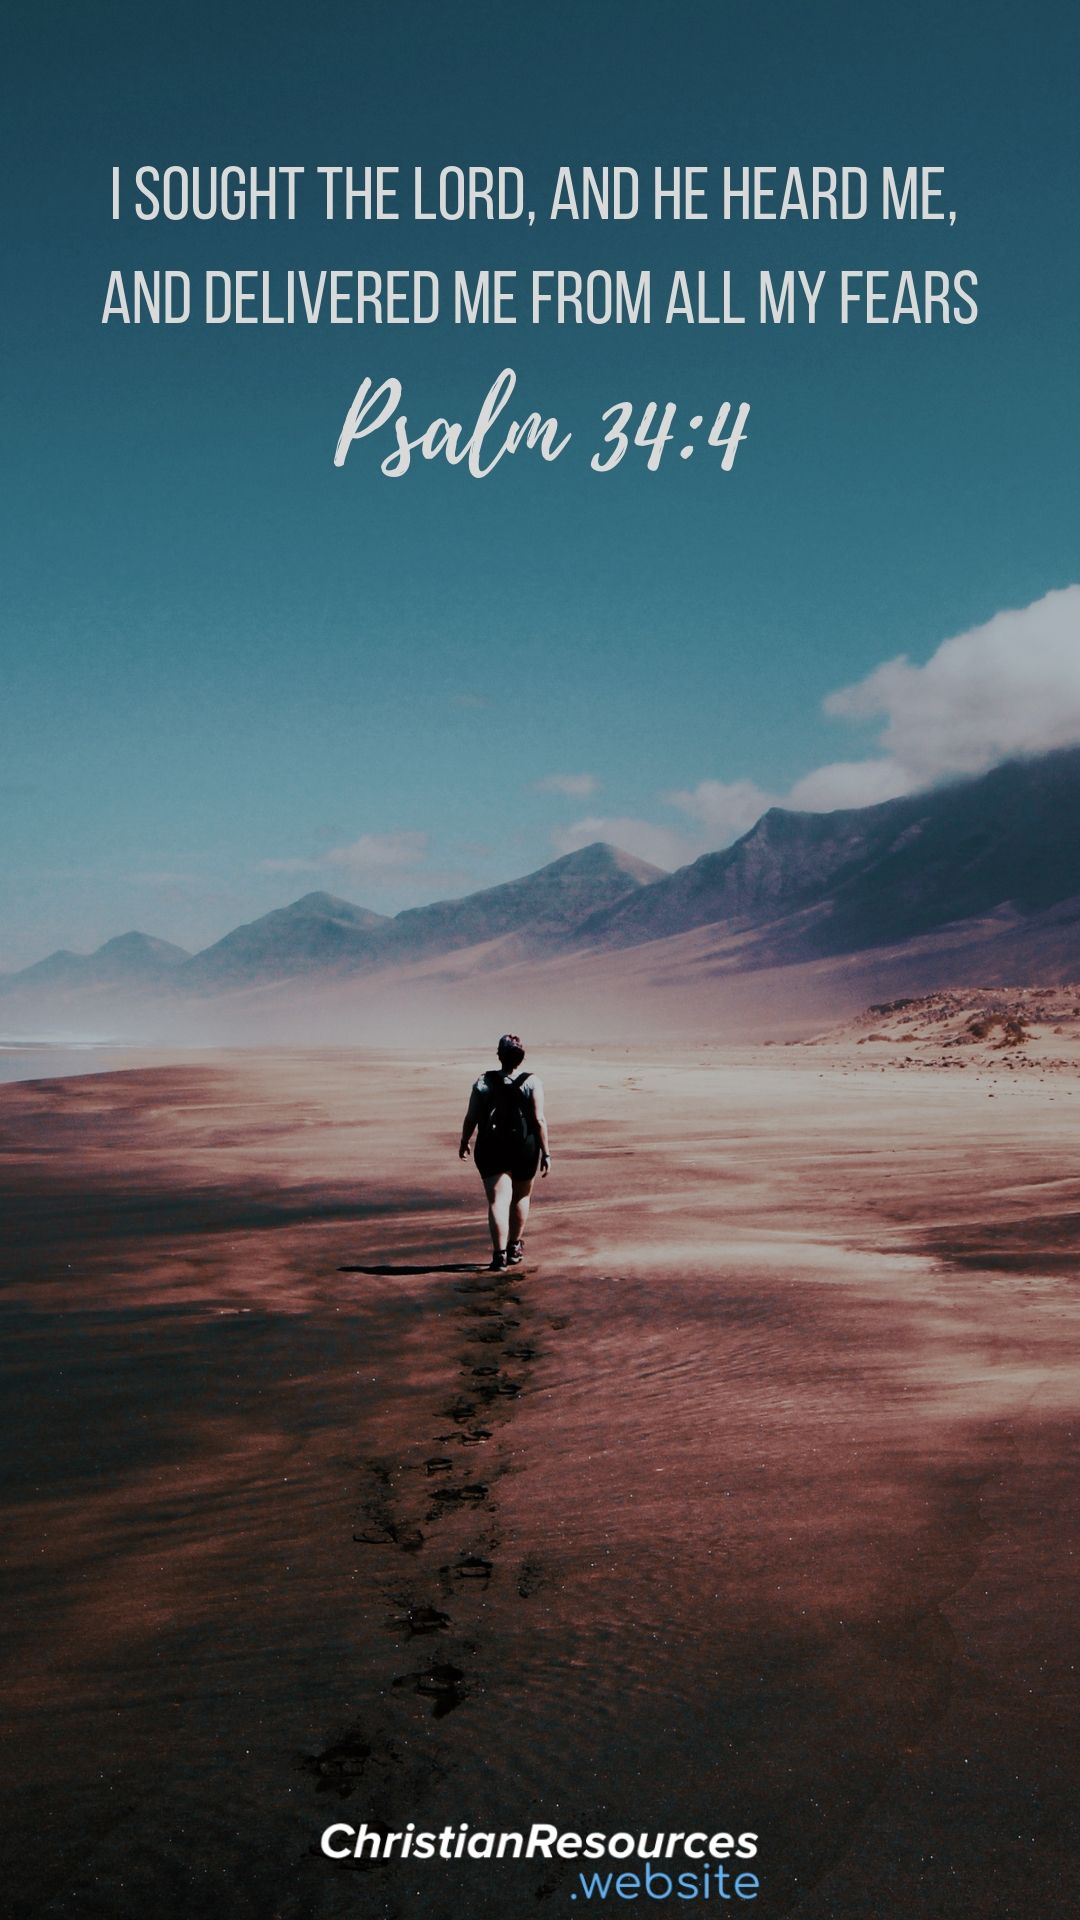 I sought the Lord, and he heard me, and delivered me from all my fears (Psalm 34:4). #BibleVerses #BibleQuotes #ScriptureQuotes #GodQuotes #BibleQuotesInspirational #ChristianResources #Bible #Quotes